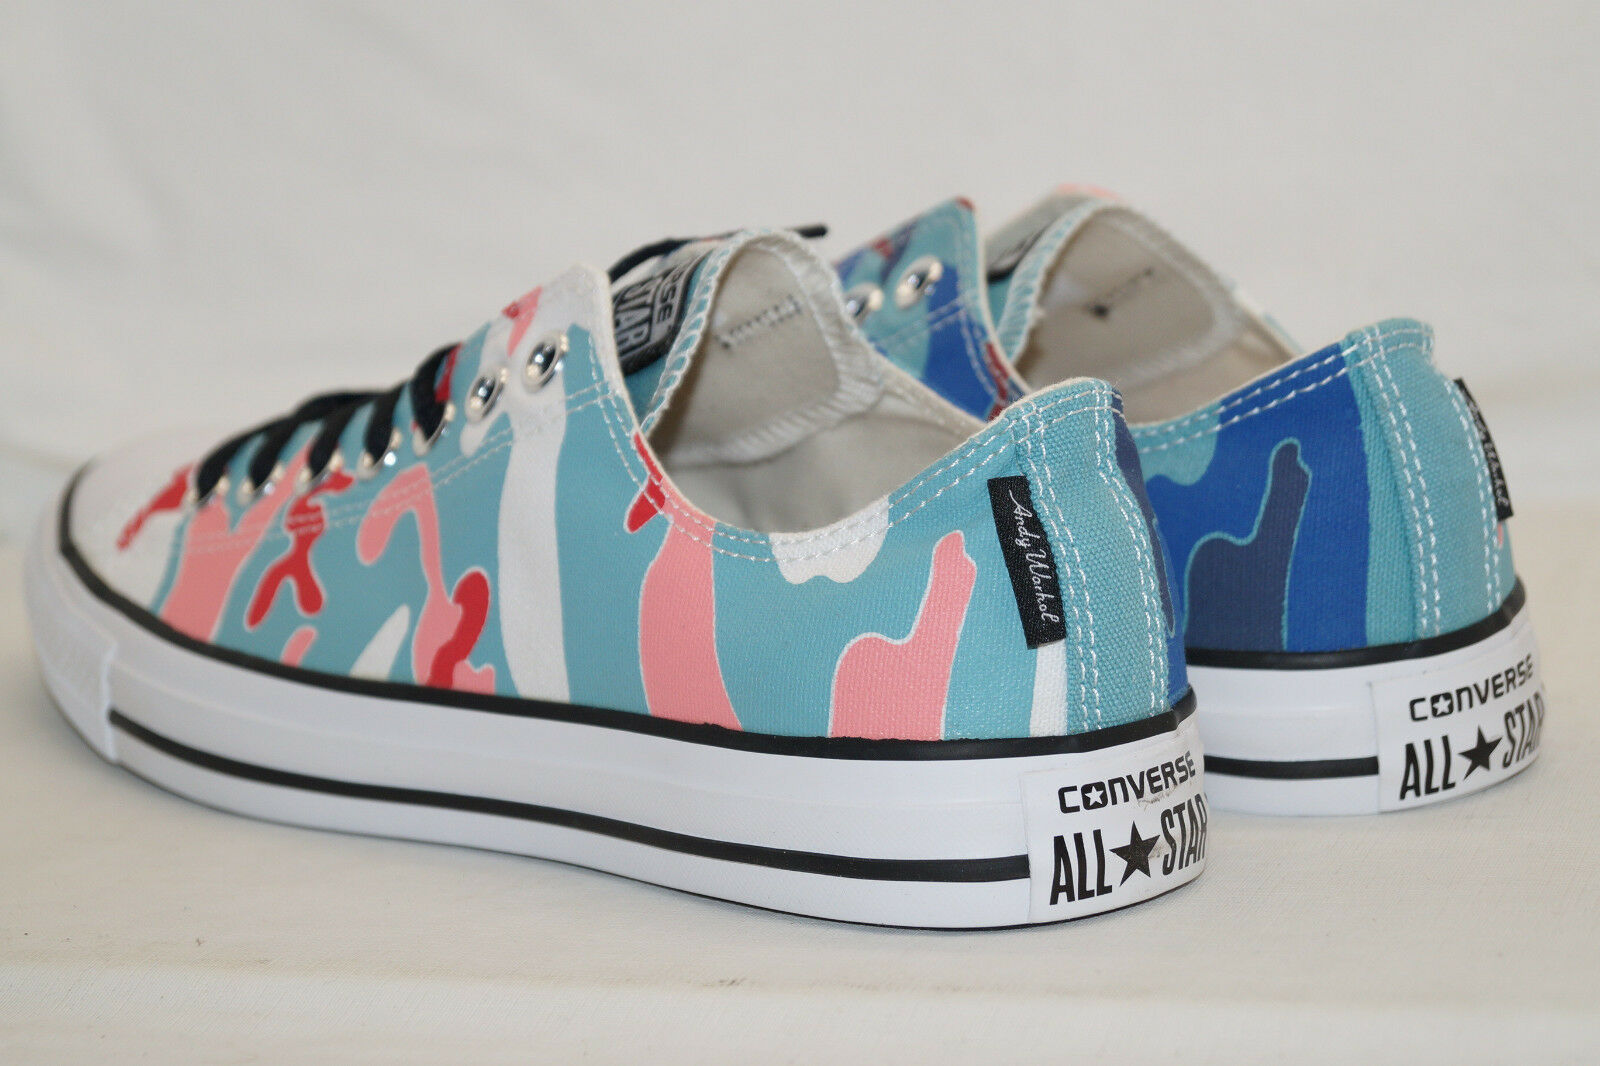 CONVERSE Gr.42,5 CHUCKS ALL STAR LOW Gr.42,5 CONVERSE UK 6,5 CT OX WARHOL Ni Nile Blau 149489C fe4139